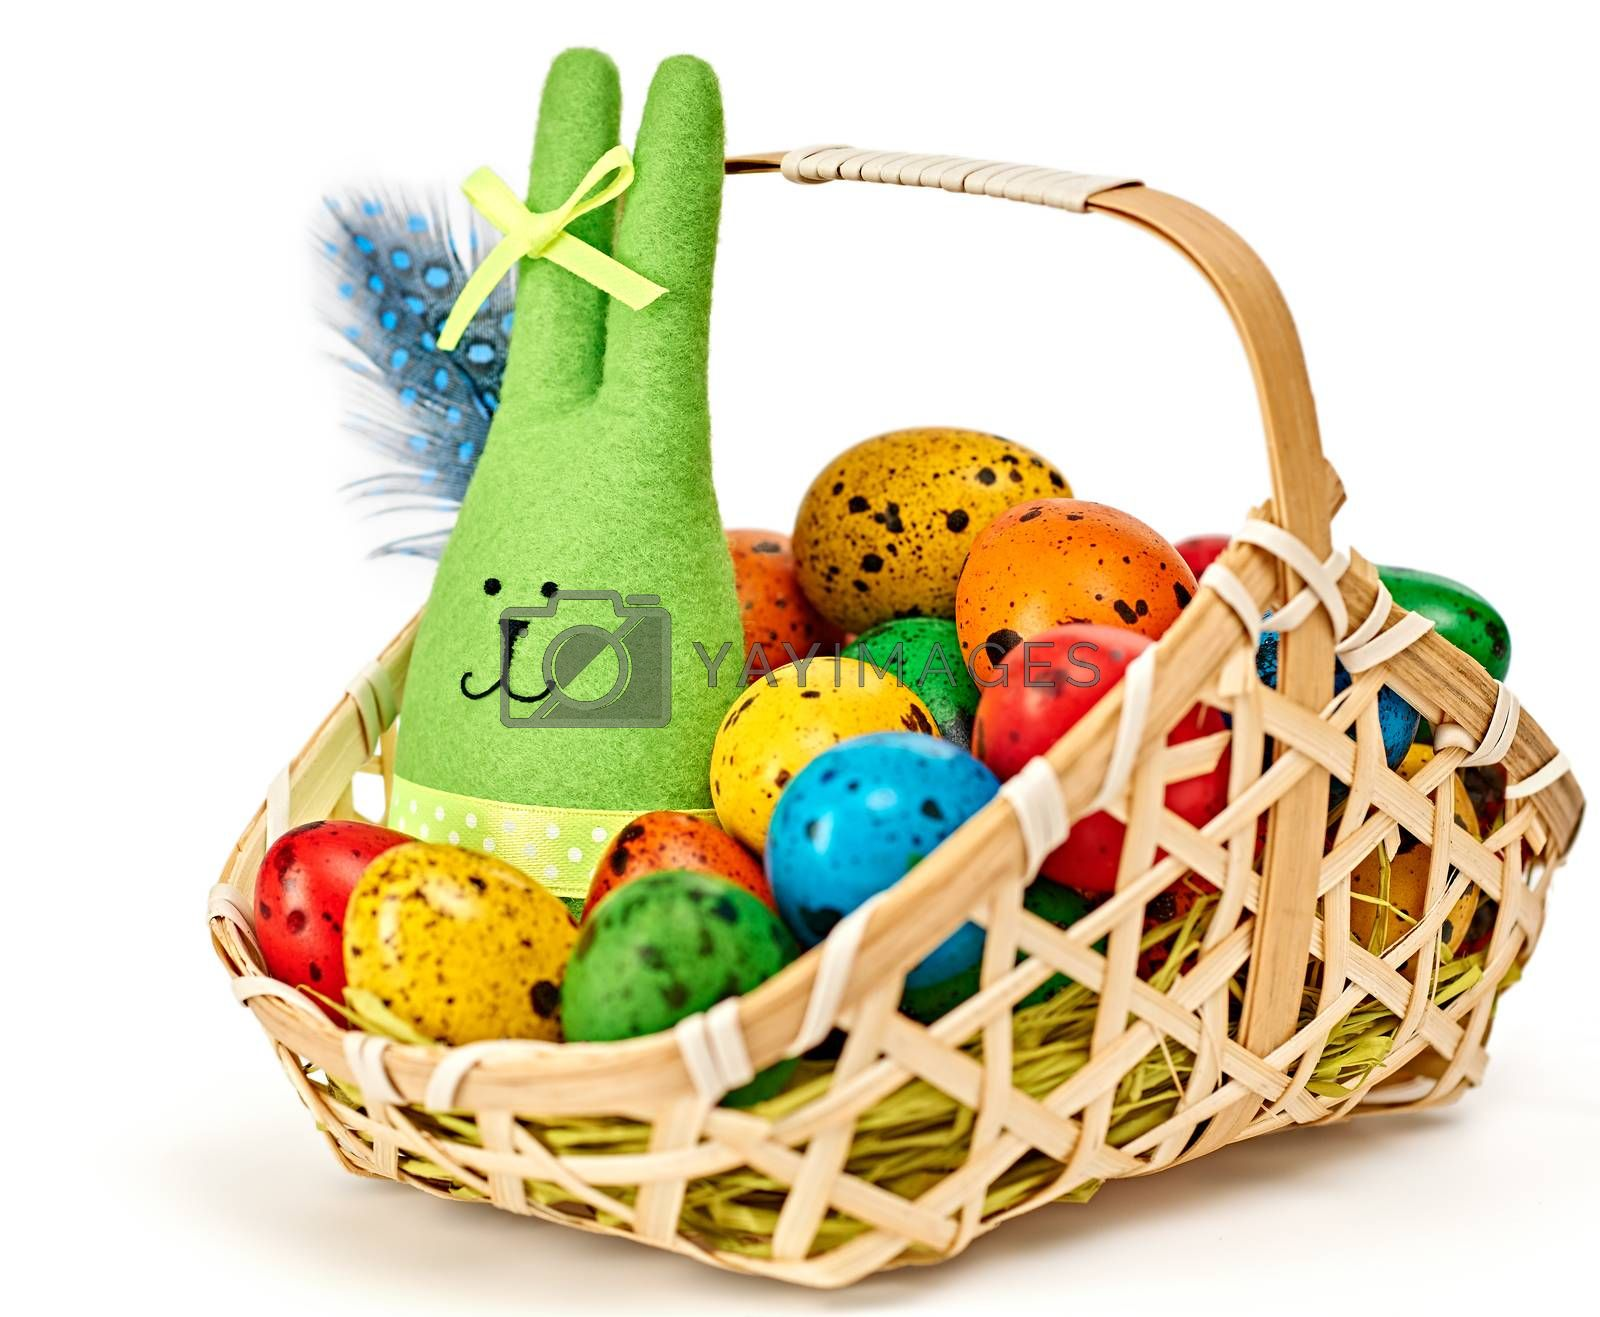 Easter rabbit and eggs in basket. Happy bunny handmade and hand painted multicolored quail eggs with straw and feathers, on white background. Unusual creative holiday greeting card